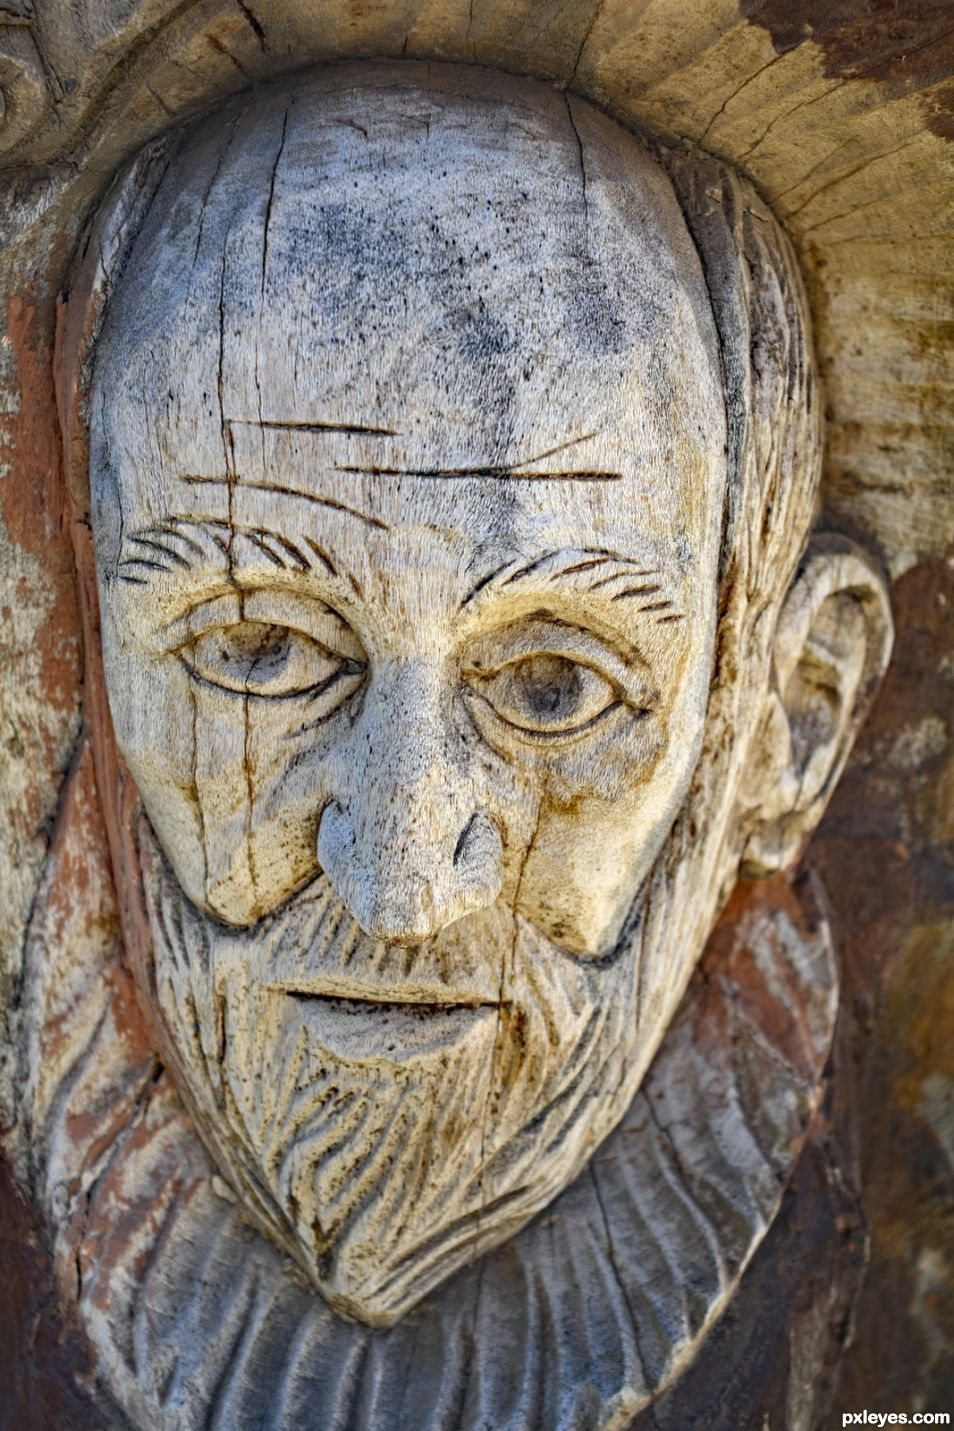 Why the Wooden Face